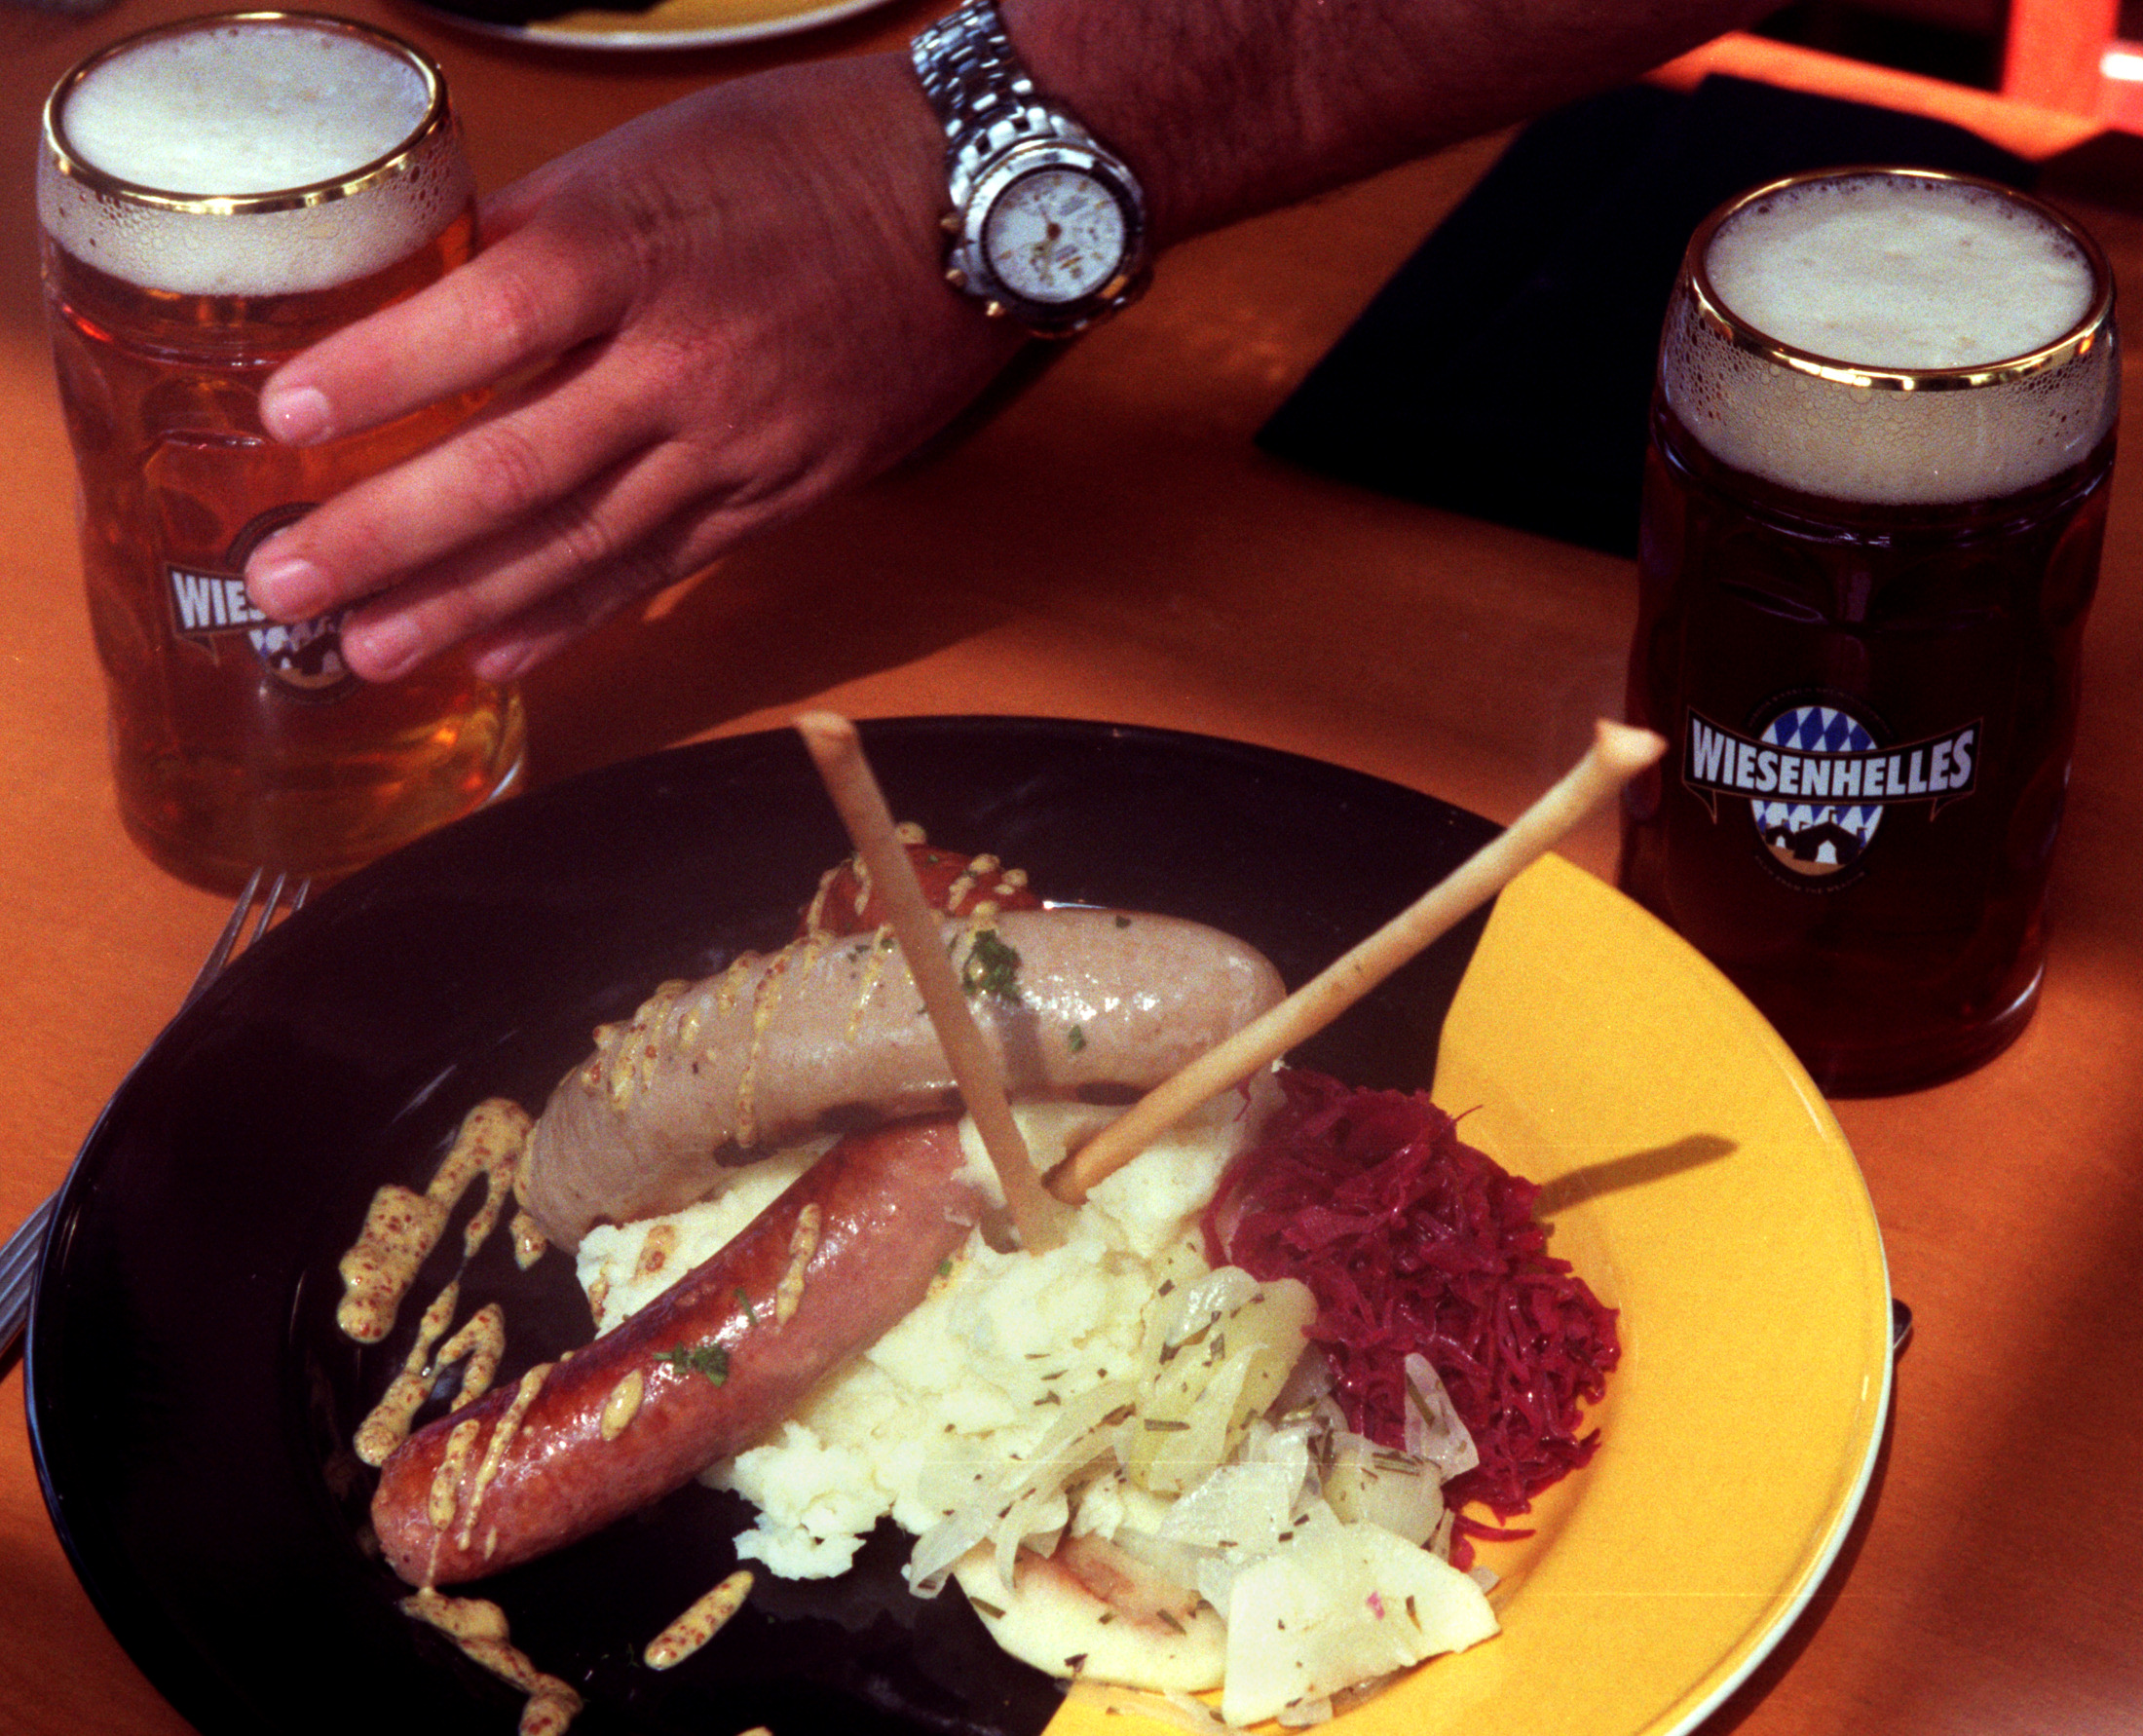 CA.Biersch.Sausages.RDL (9/17/98) (Anaheim, CA) Grilled sausages with sweet and sour red cabbage at